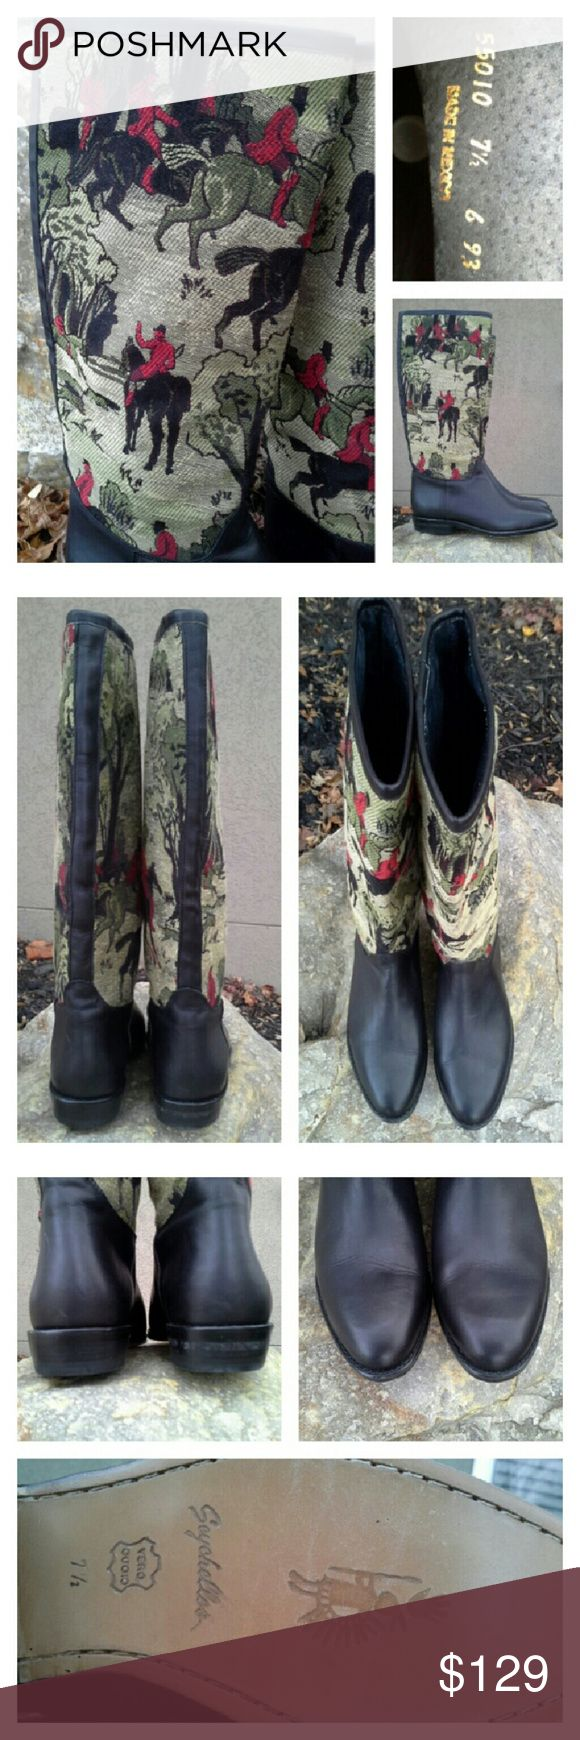 """SEYCHELLES Fox Hunt Tapestry Riding Style Boots Beeeautiful! Black leather uppers and trim. Black charcoal suede interior. Fox hunt equestrian tapestry in light tan, greens, red, black. Near perfect condition, with only minor apparent wear appearing as some creasing on the vamp; soles appear completely unused. Approx measurements: heel height 1"""", shaft 15"""", circumference at opening 13"""", width at ball of foot 3-1/4"""""""". Seychelles Shoes Heeled Boots"""